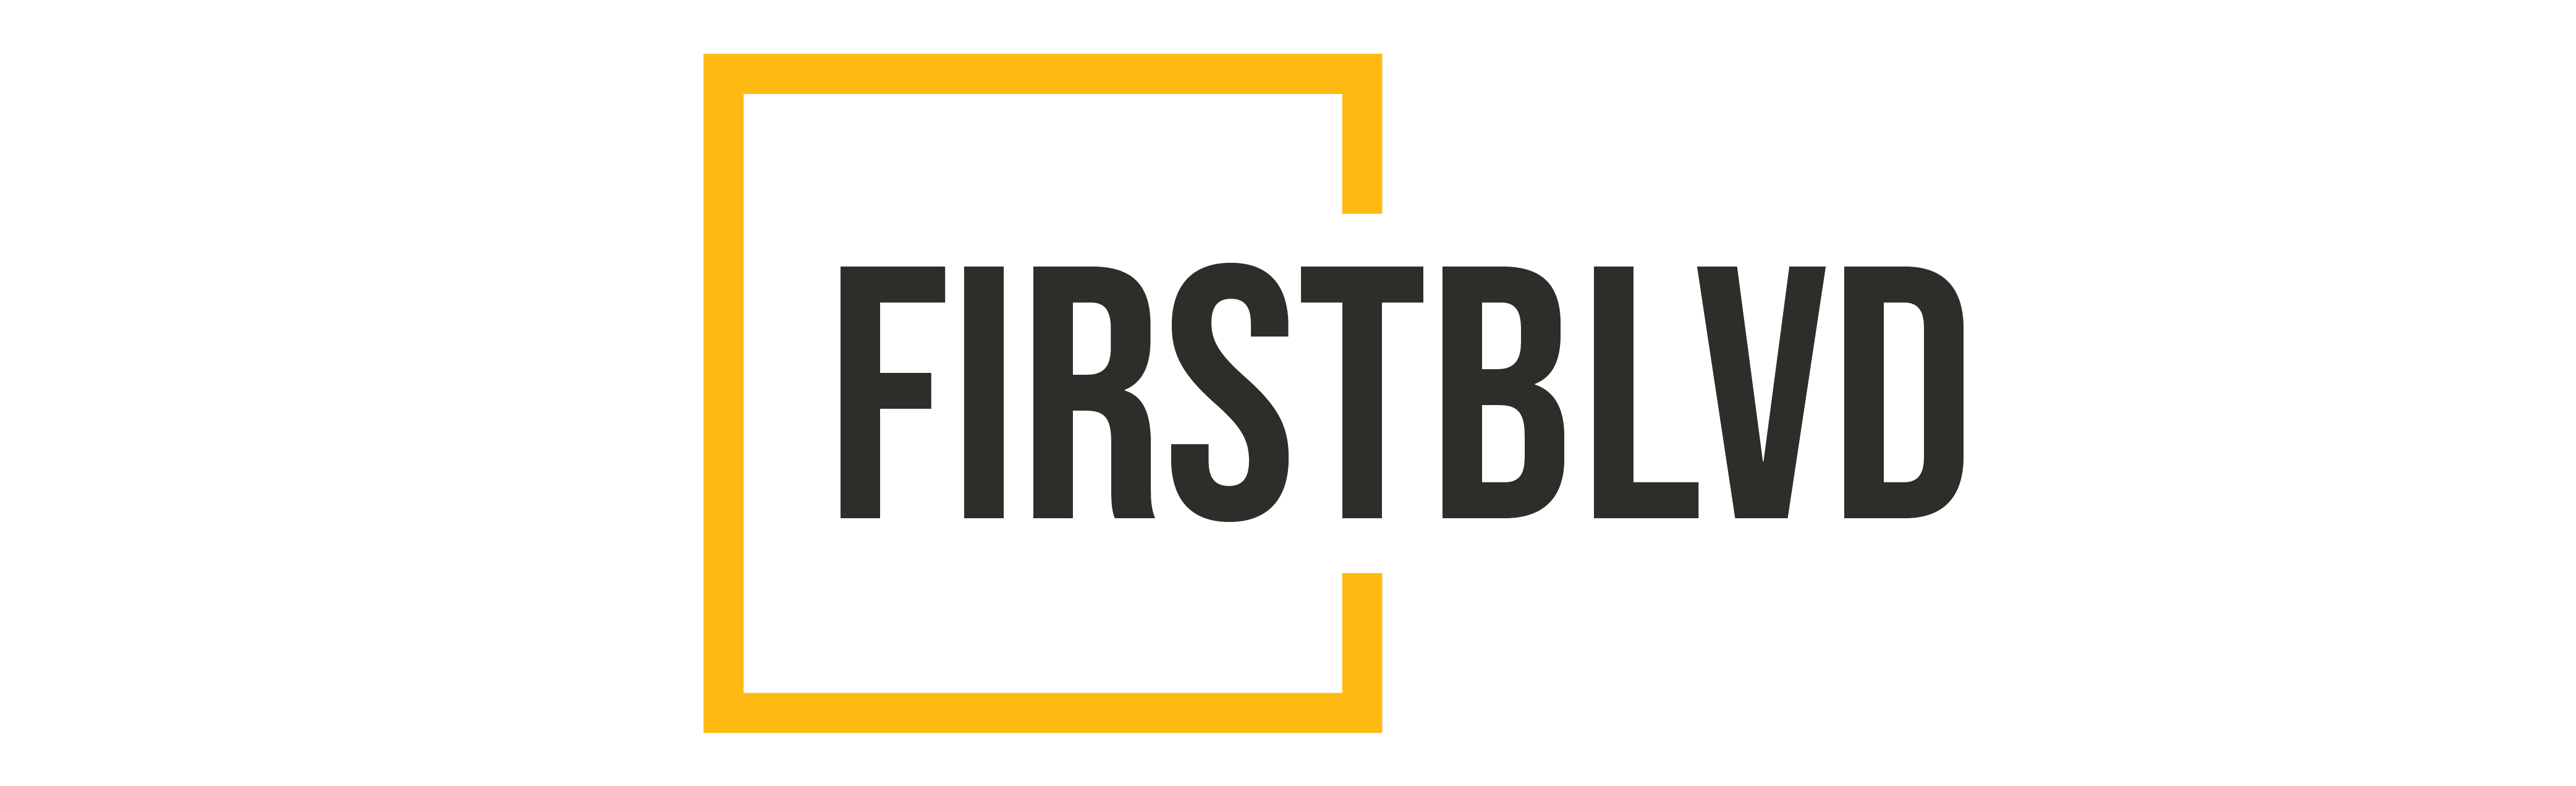 First Boulevard New Logo Approved Selective Jet ROOTfiles LOGO GoldBox JetType